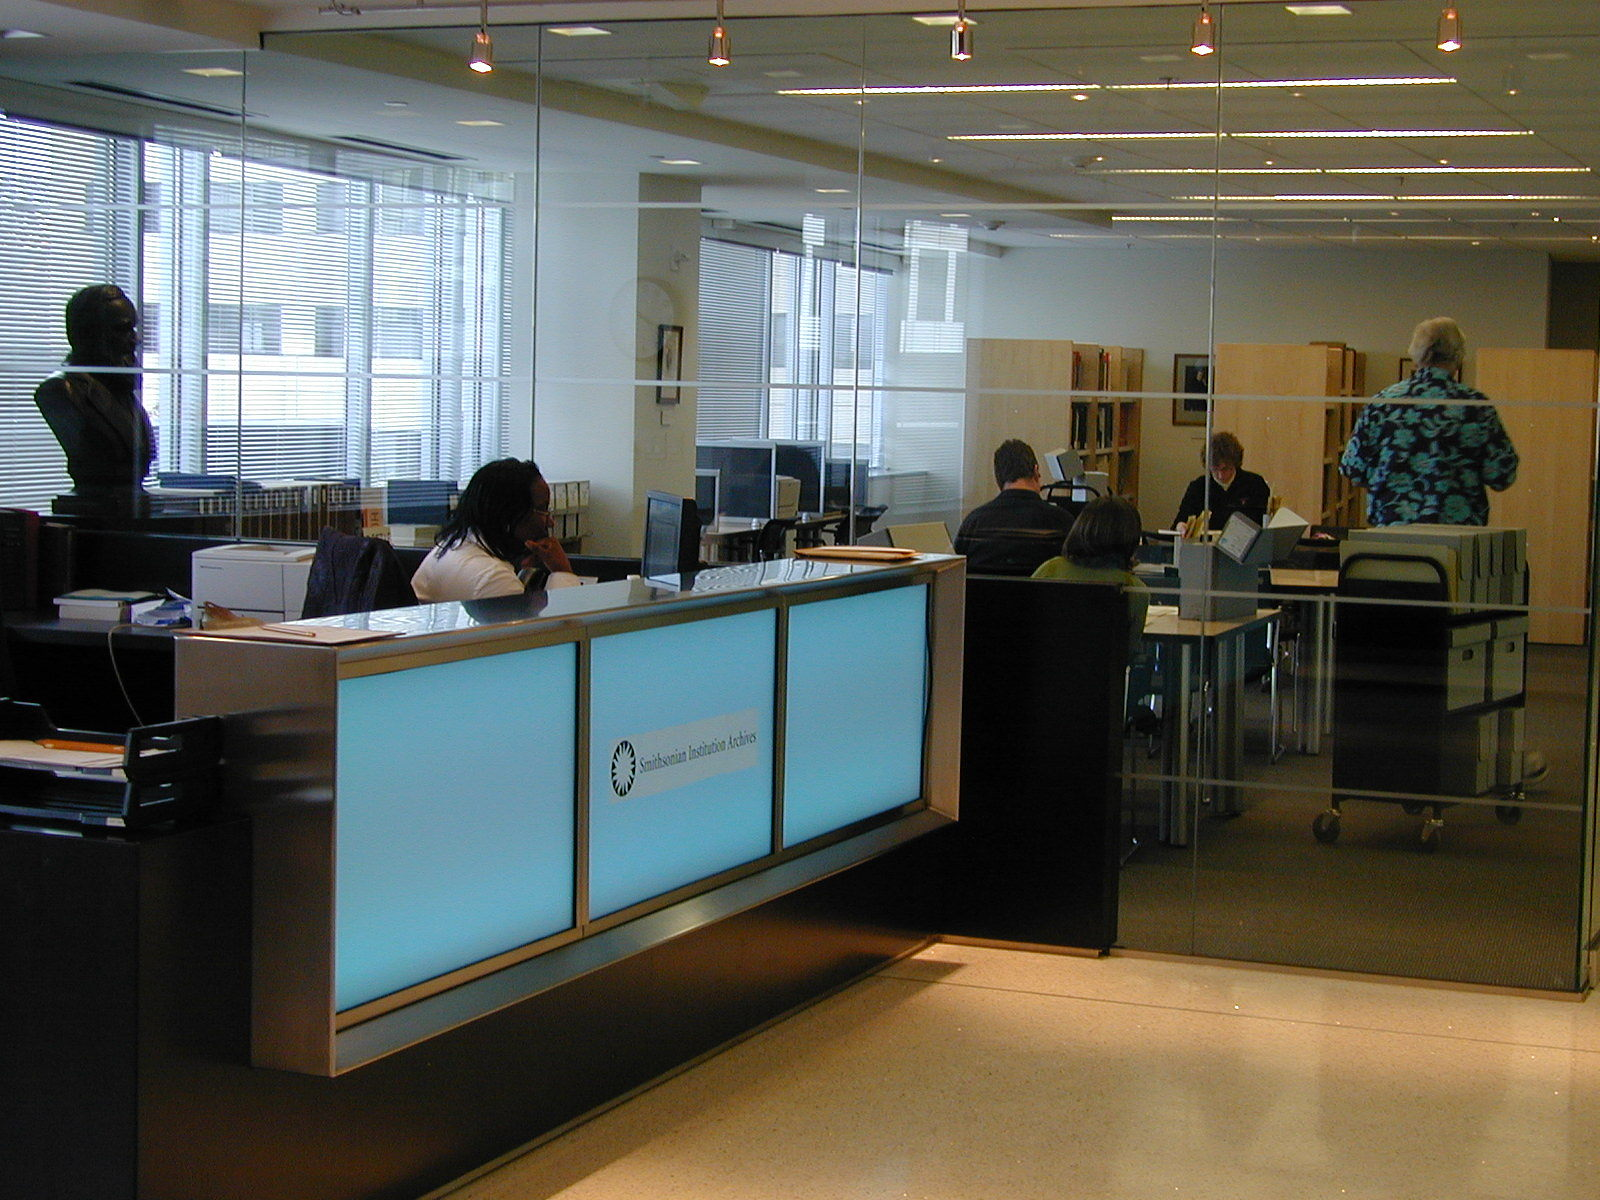 The Smithsonian Institution Archives' Front Desk, by Ken Rahaim, Courtesy of Smithsonian Institution Archives.